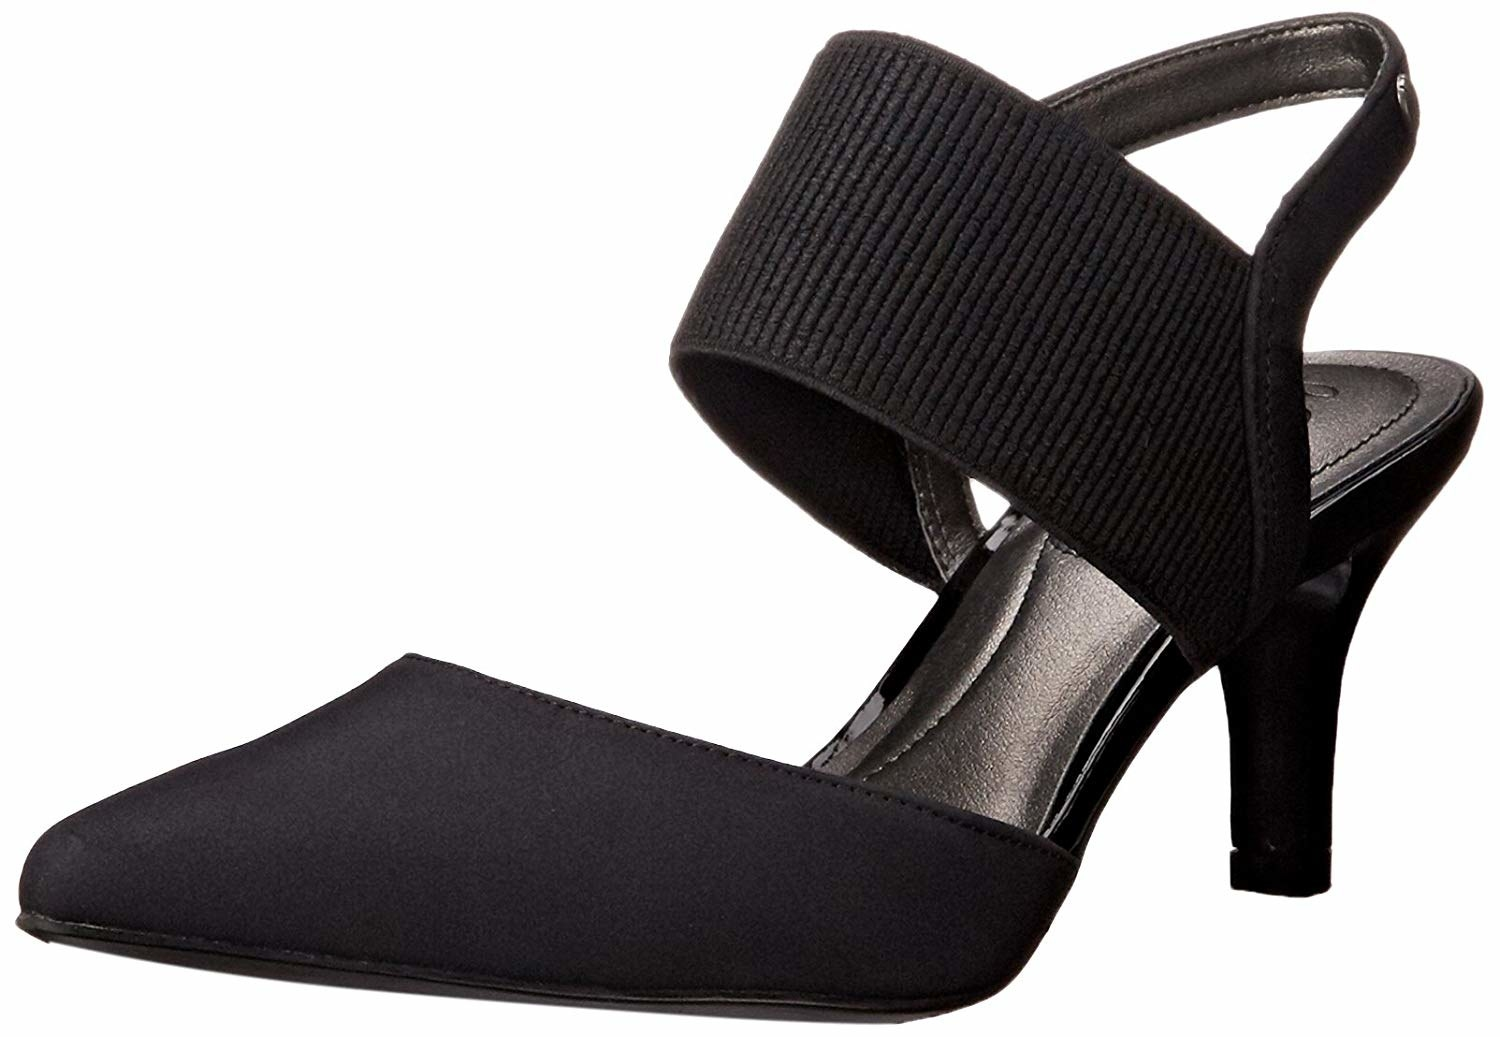 The black closed-toe heels with a skinny strap around the back of the heel and a thick elastic strap in the front